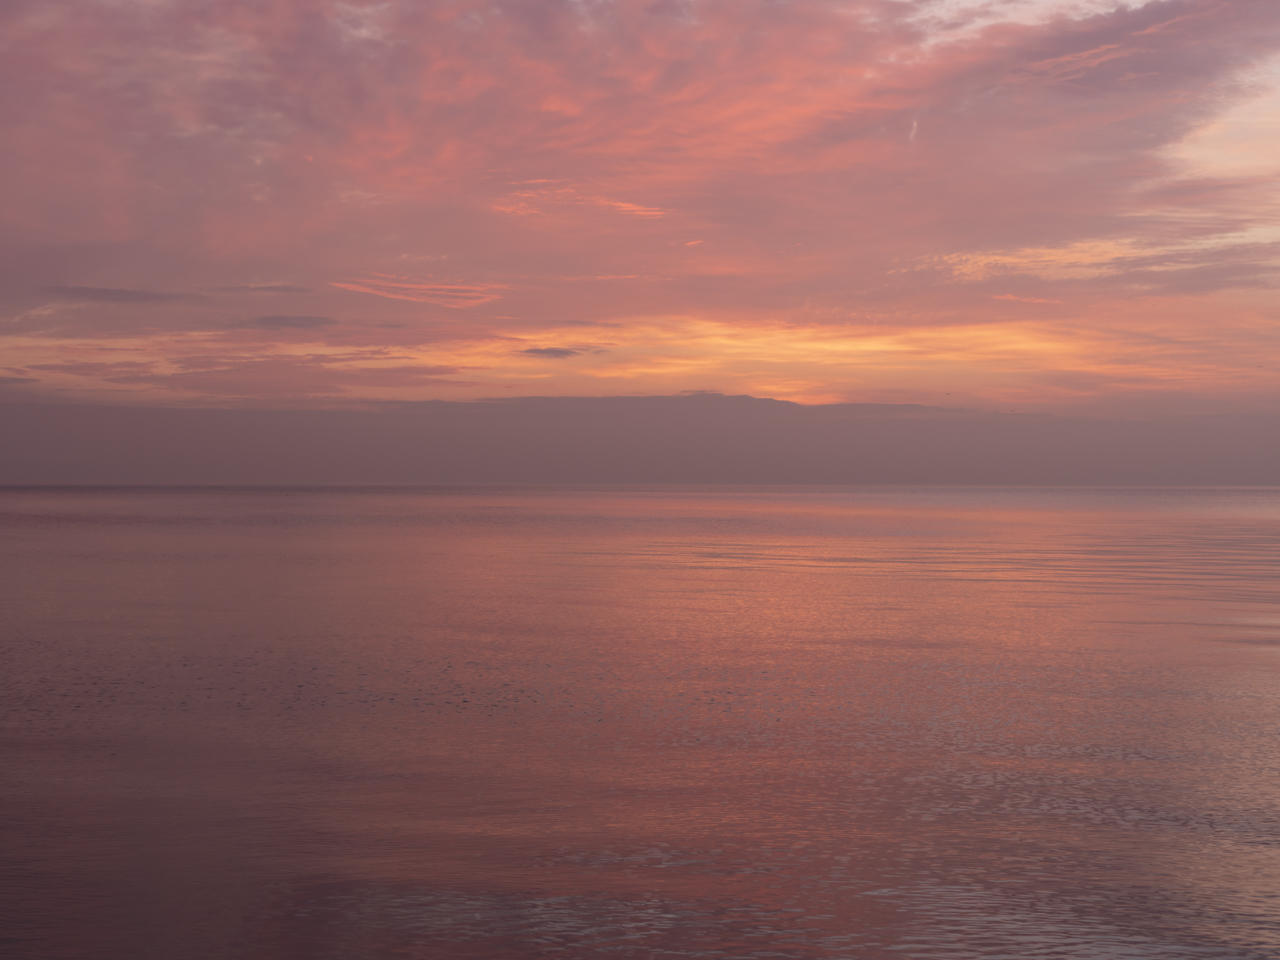 pastel morning on Lake Michigan, the sky and water are the same